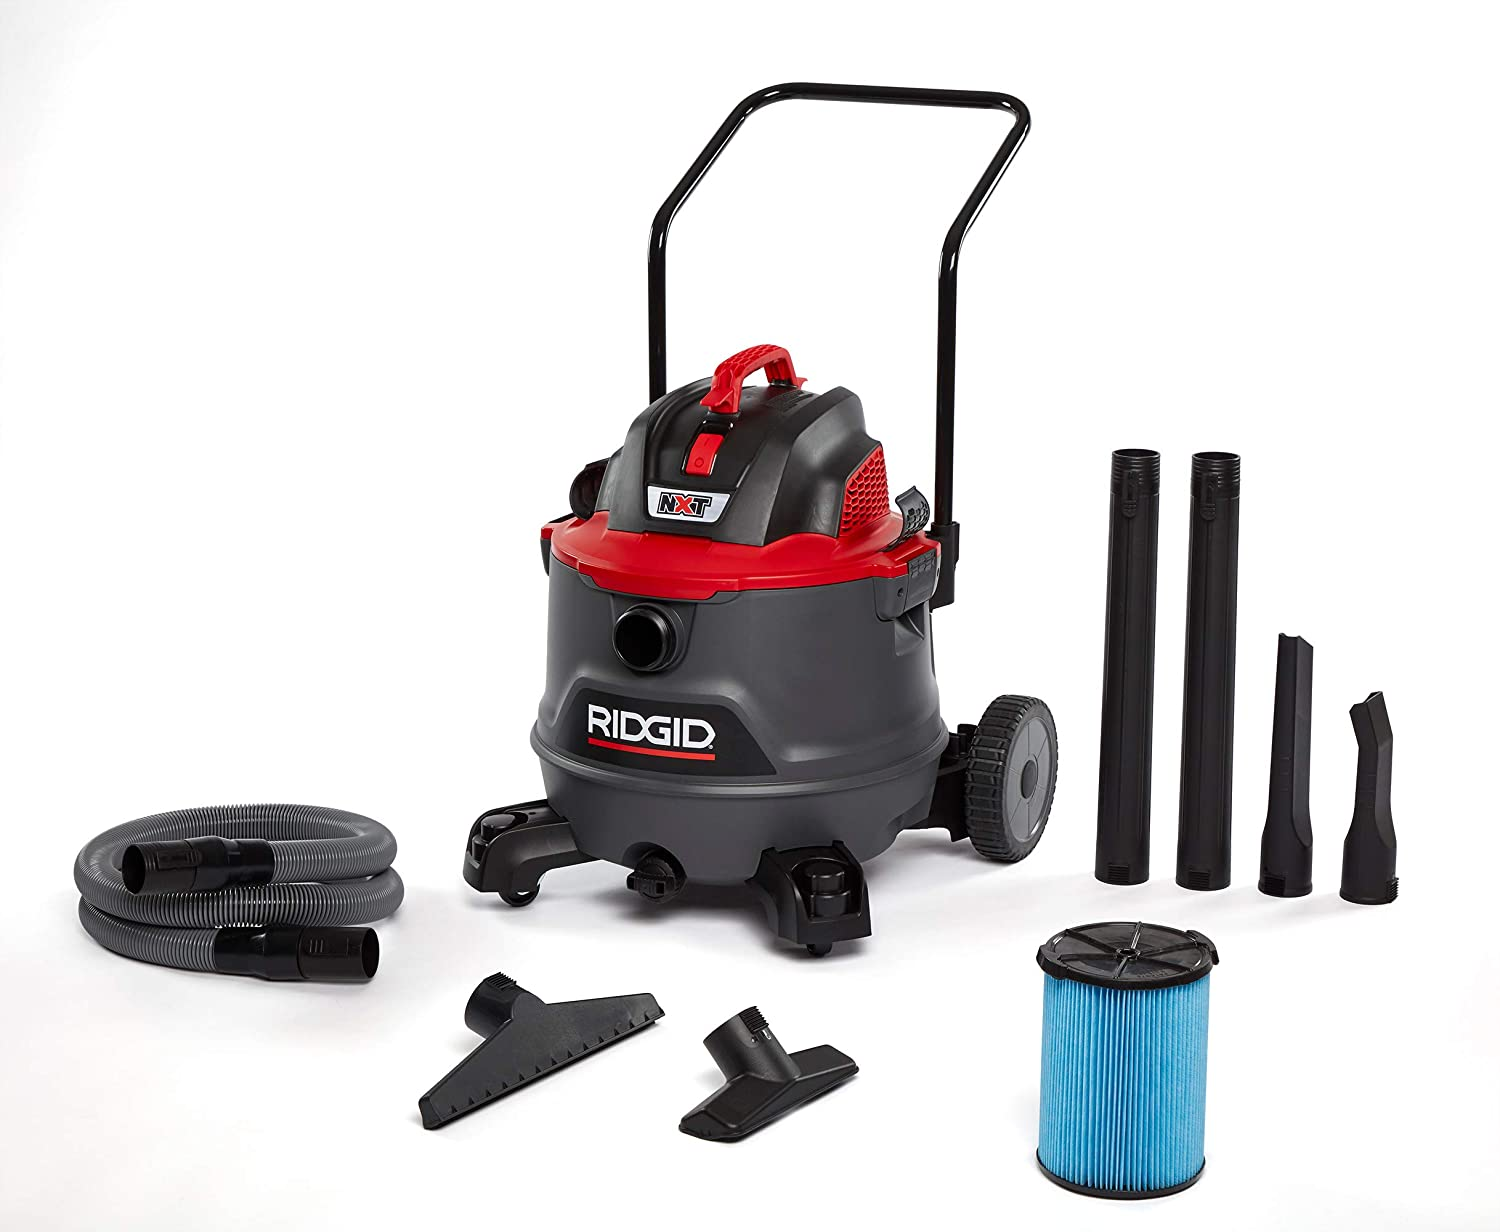 Ridgid 62718 Red 14 gallon RT1400 Wet/Dry Vacuum